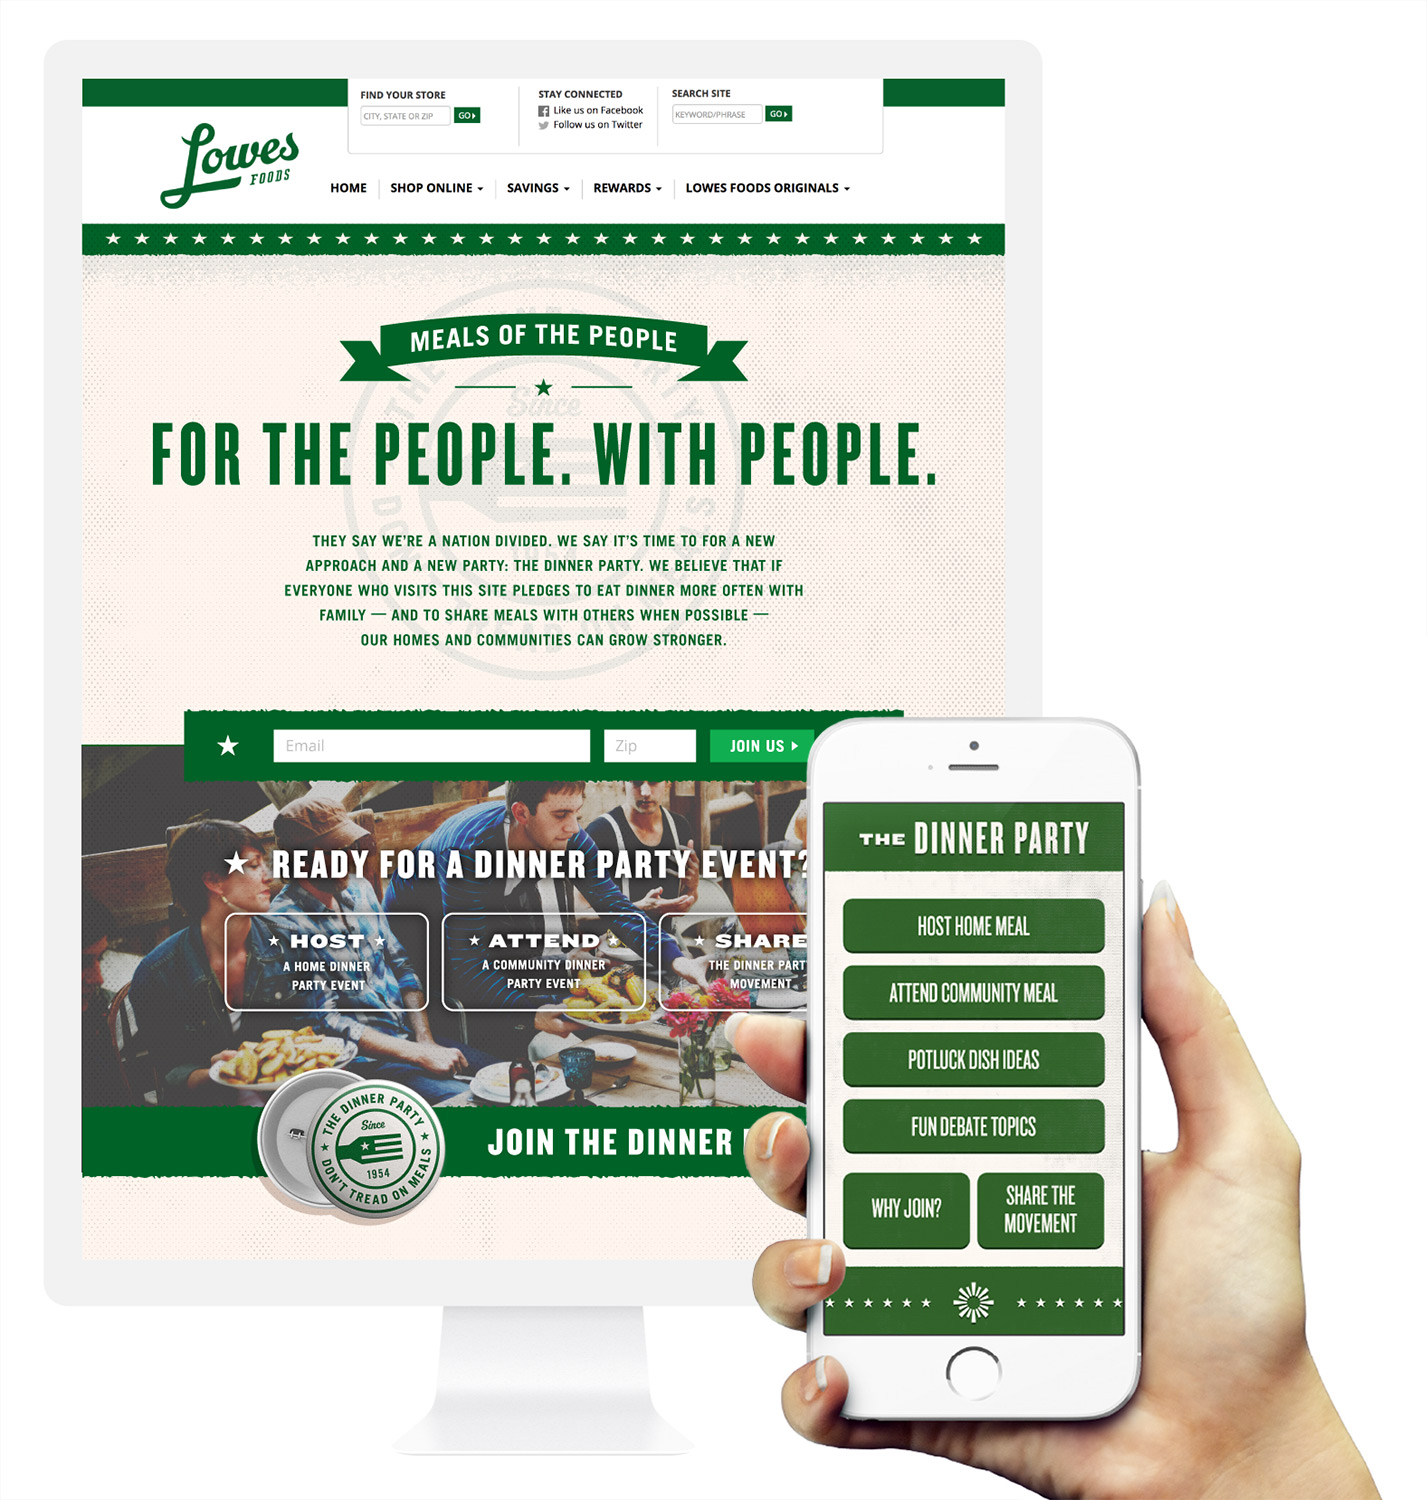 Lowes-Foods-Dinner-Party_LandingPage2.png